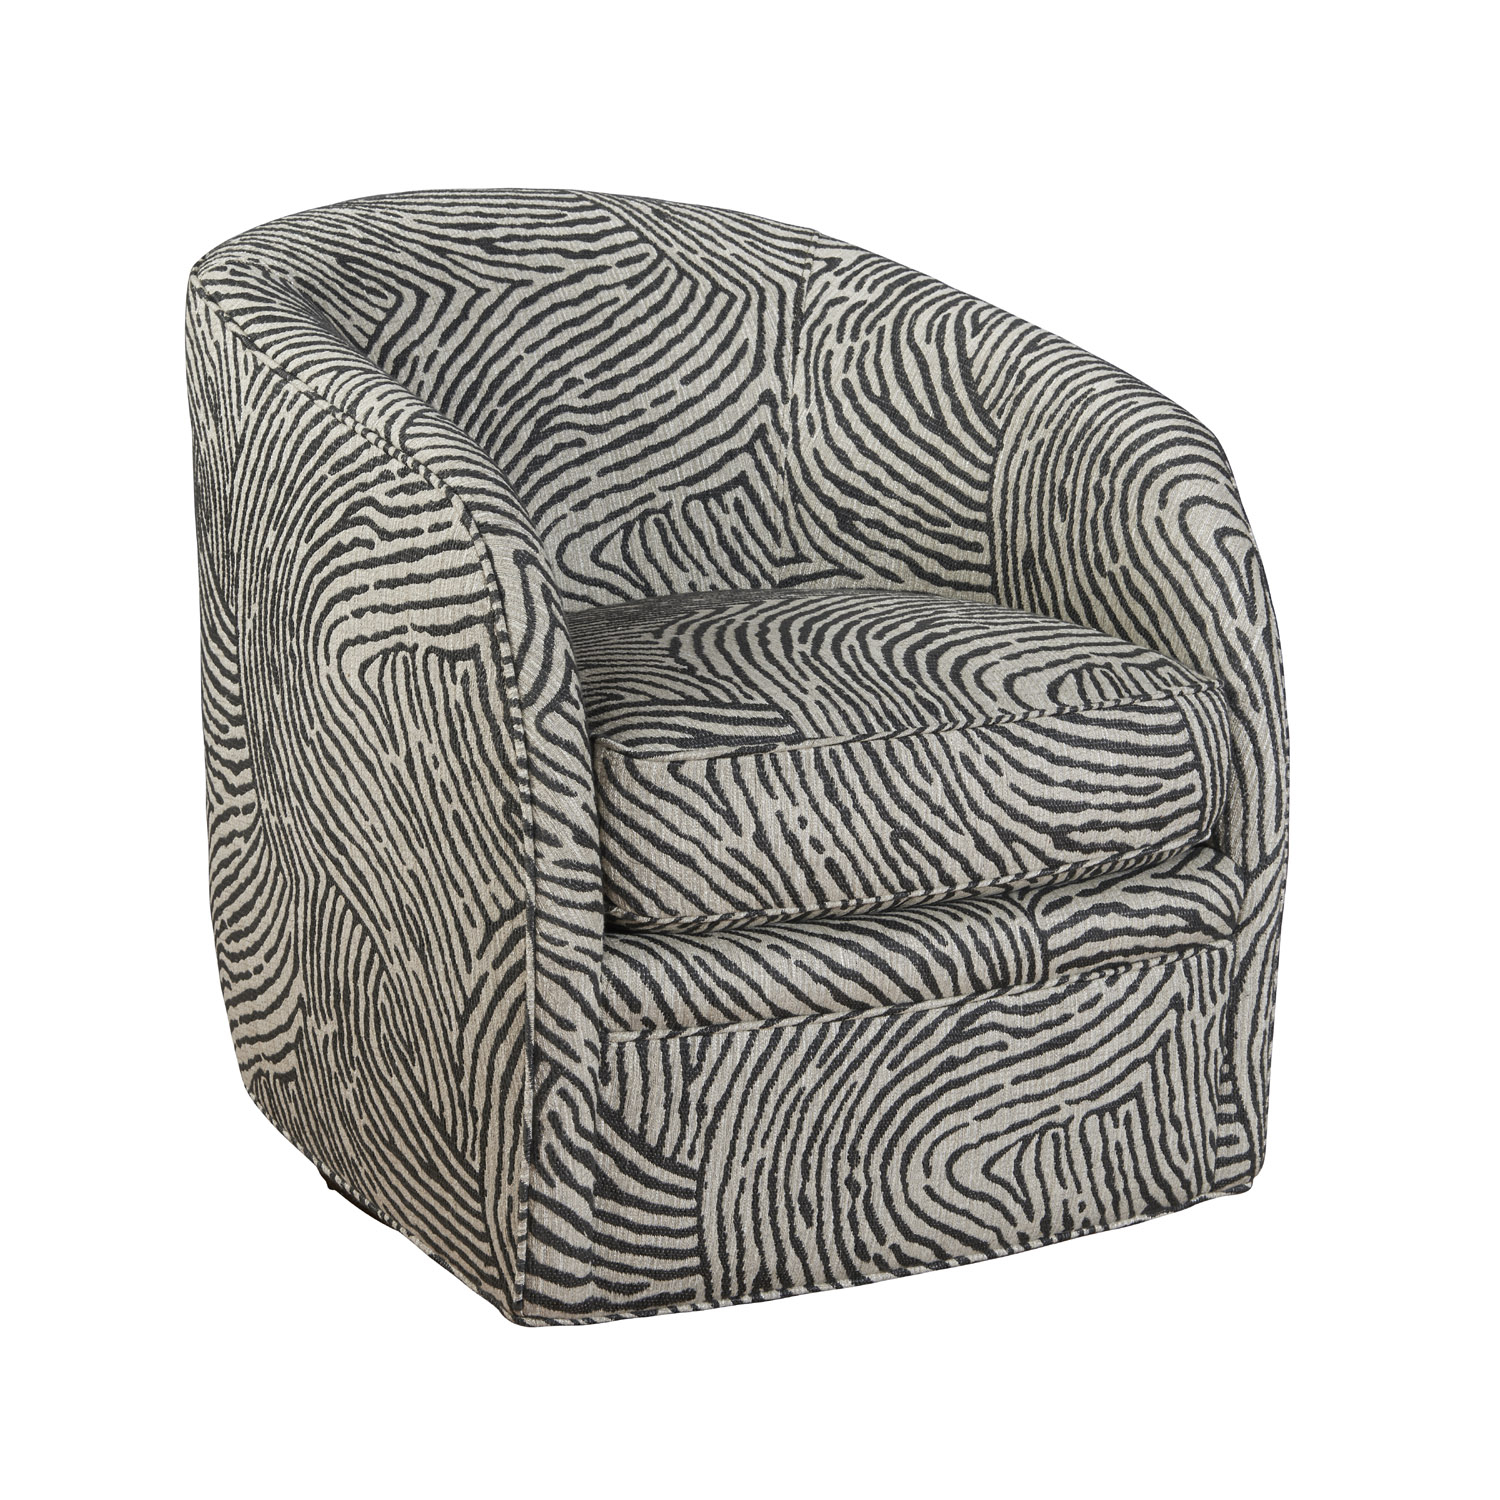 Francesca Swivel Chair – Sunniva Charcoal Within Charcoal Swivel Chairs (View 23 of 25)